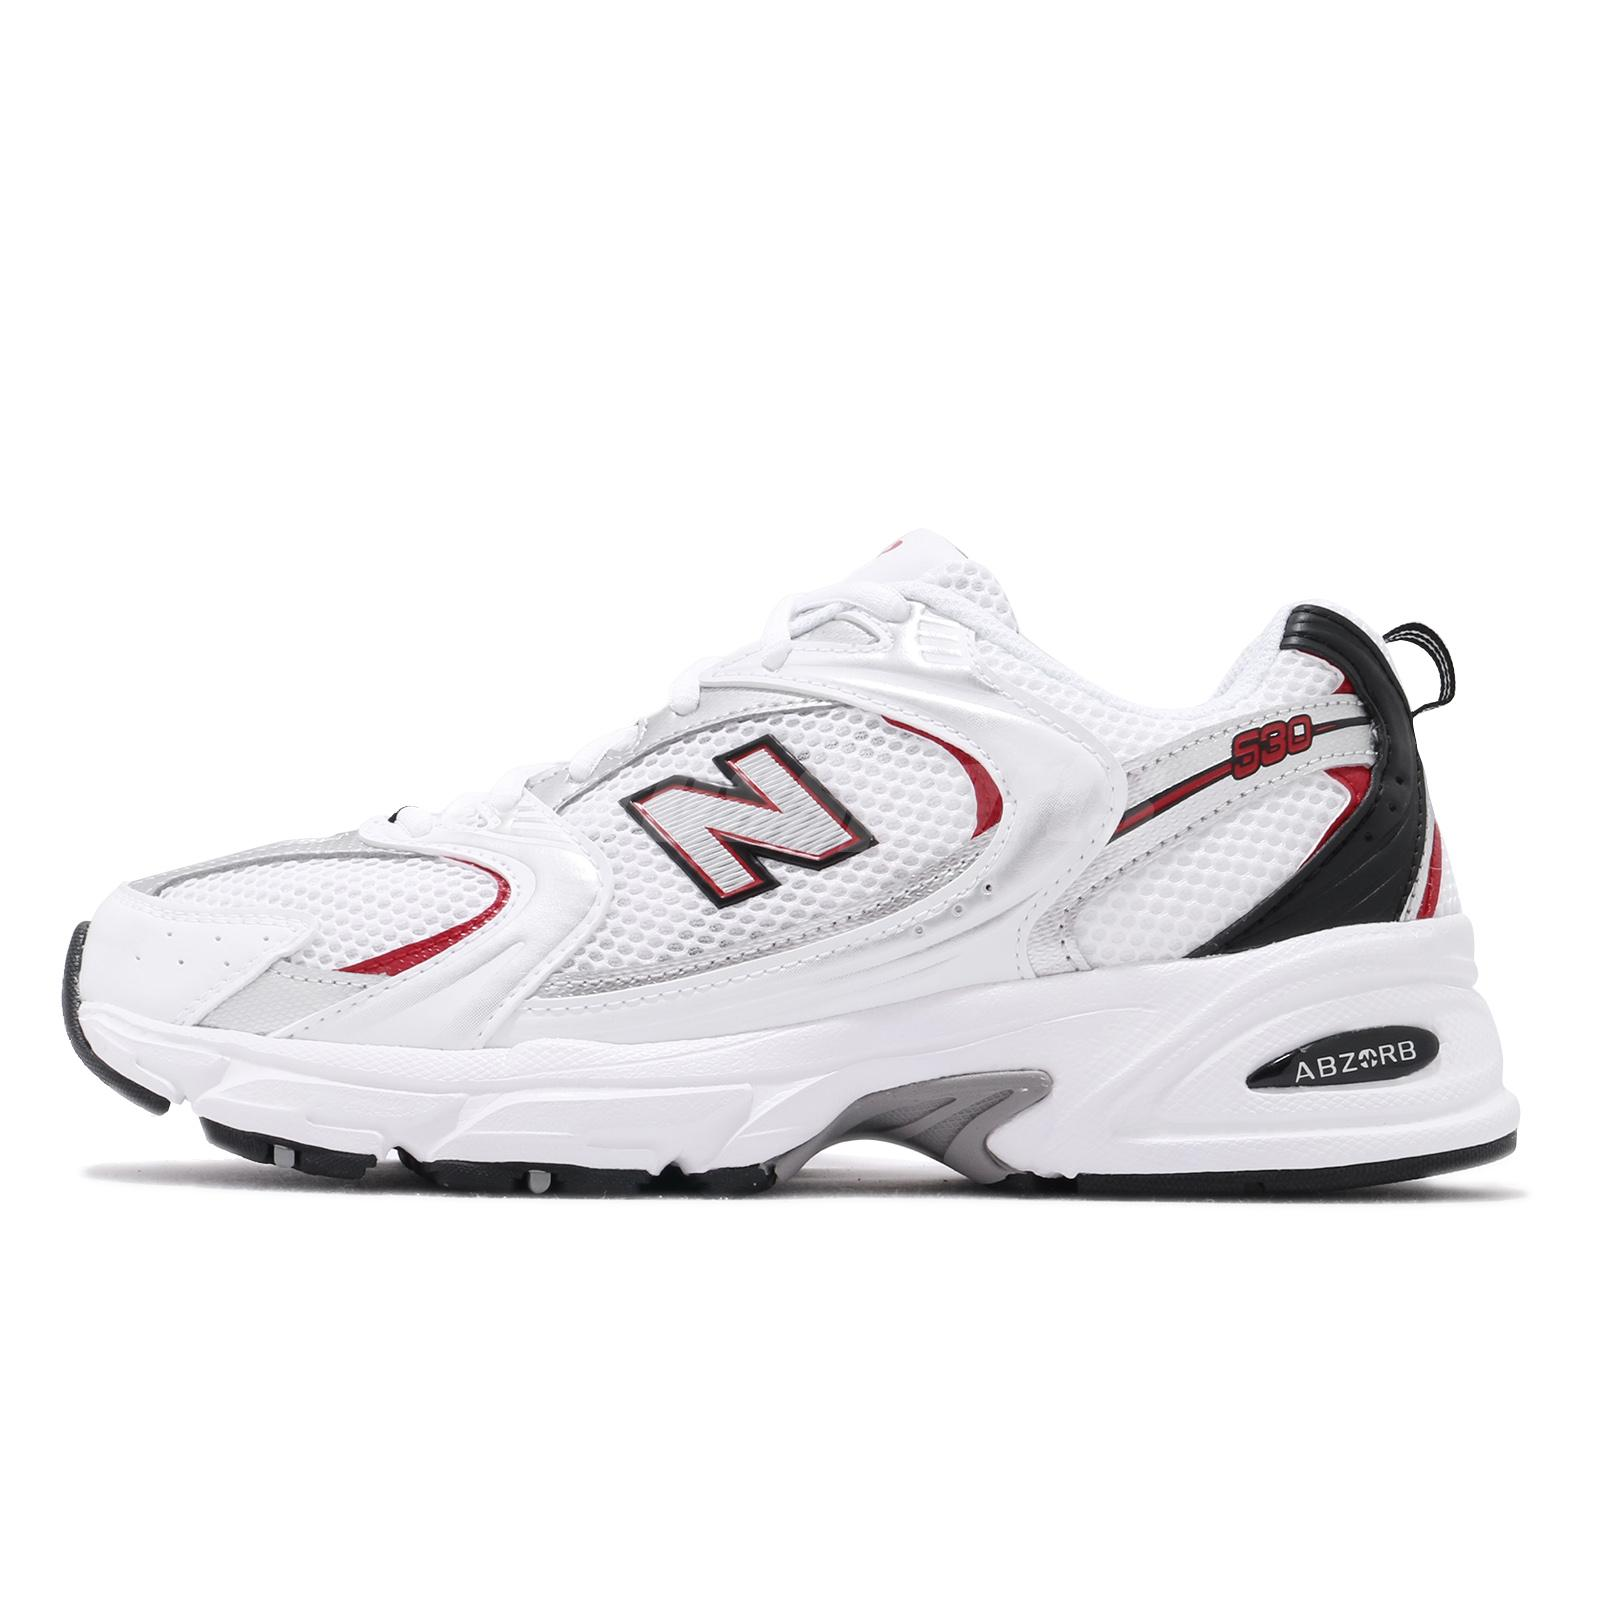 Details about New Balance 530 V2 Retro White Silver Red Men Women Running  Shoes MR530SA D